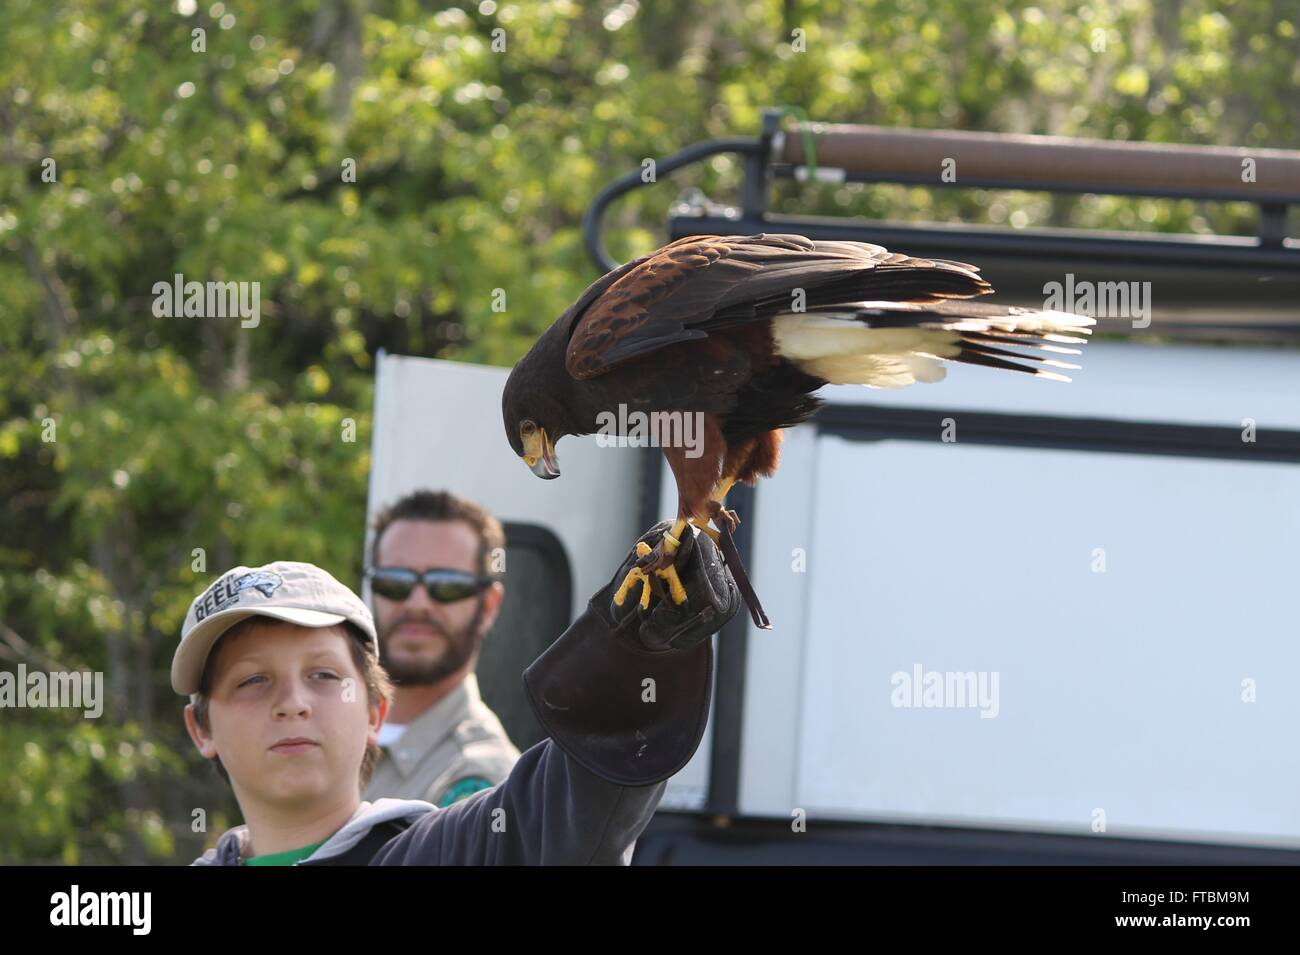 Harris' Hawk at Lake Livingston State Park - Stock Image